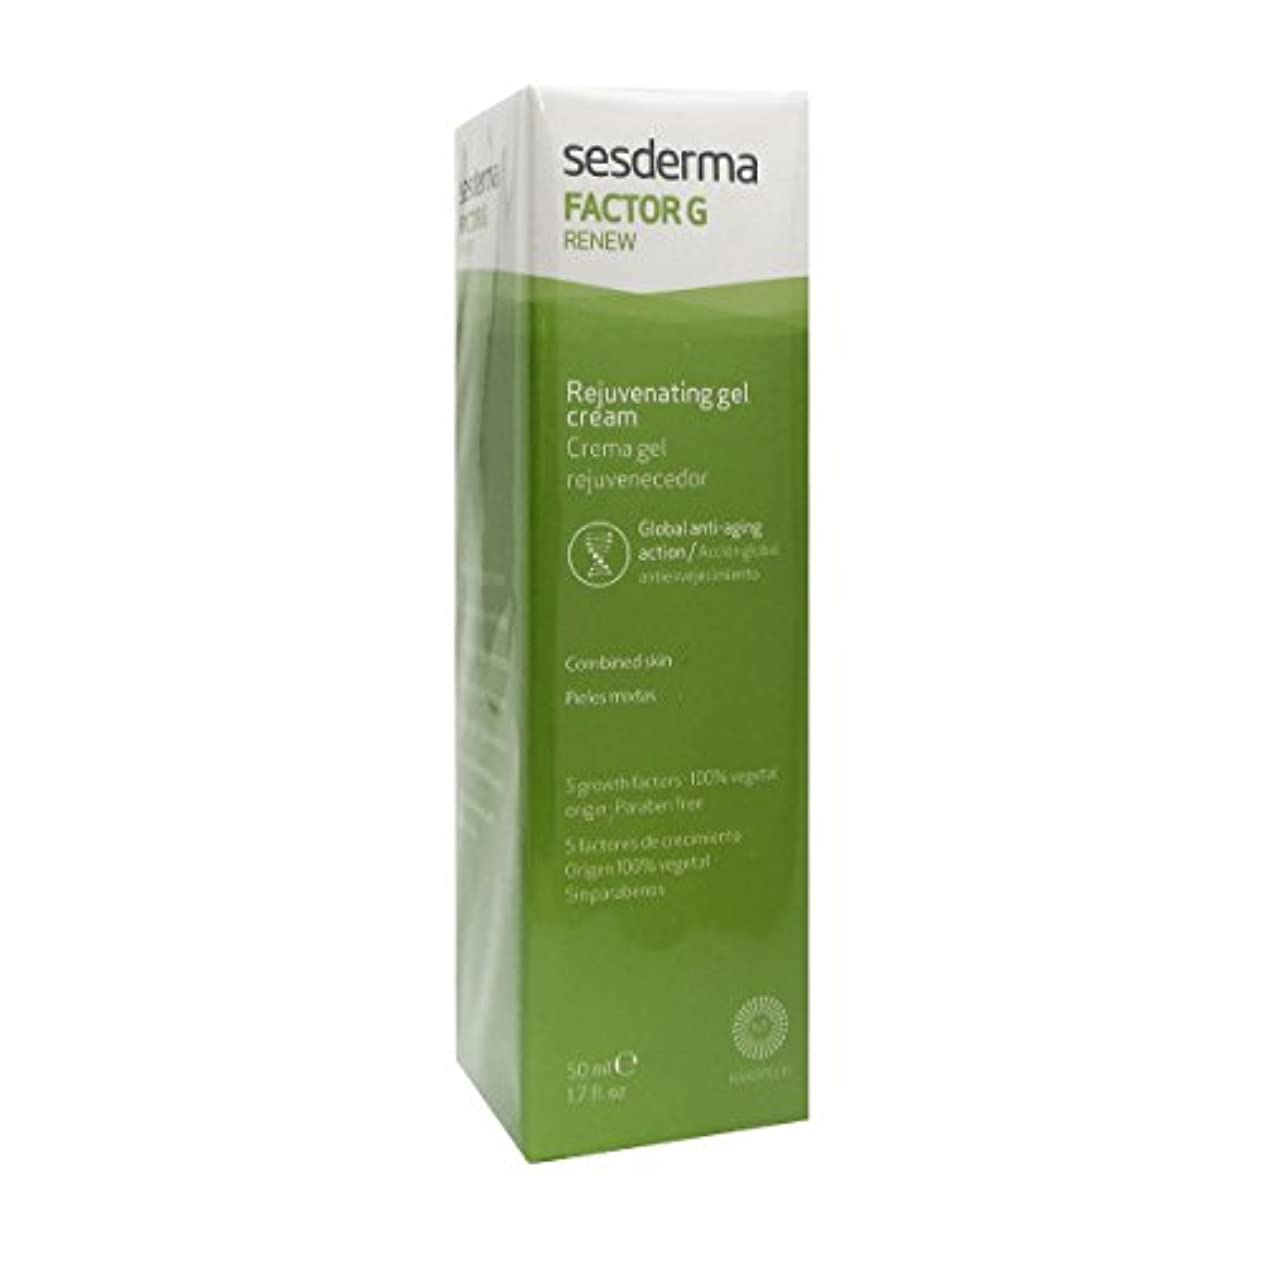 Sesderma Factor G Renew Cream Facial Cream 50ml [並行輸入品]